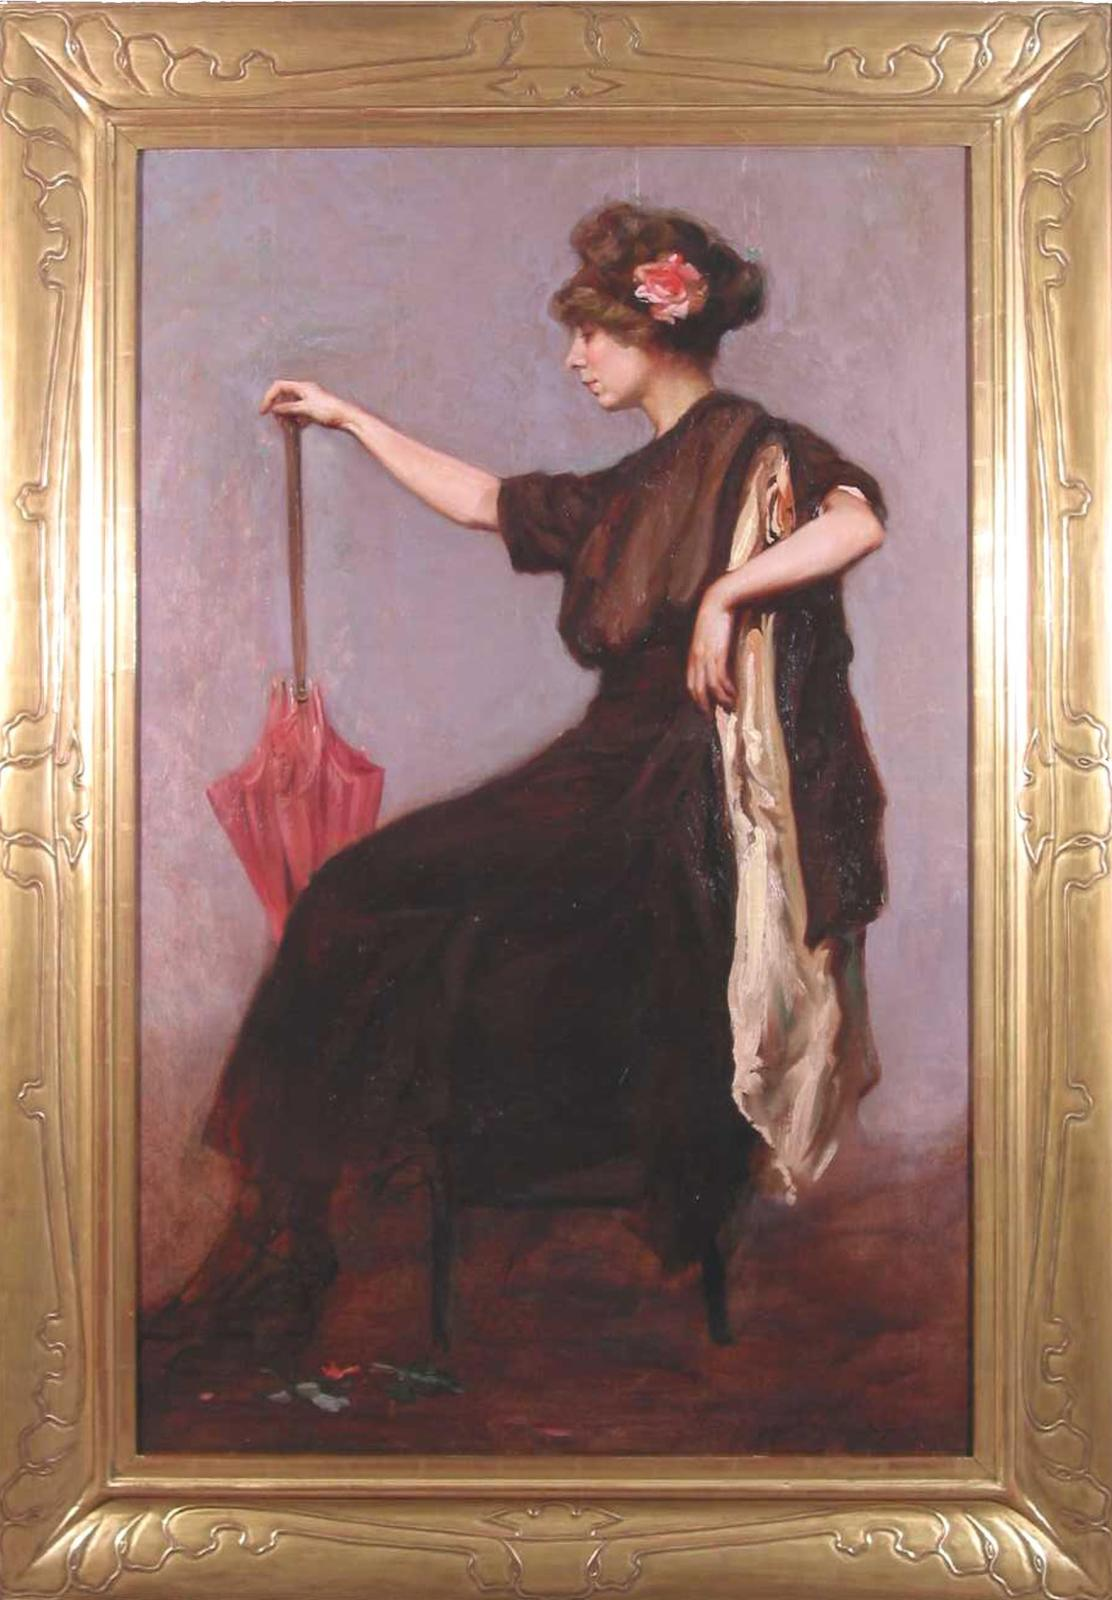 Woman with a Rose in Her Hair